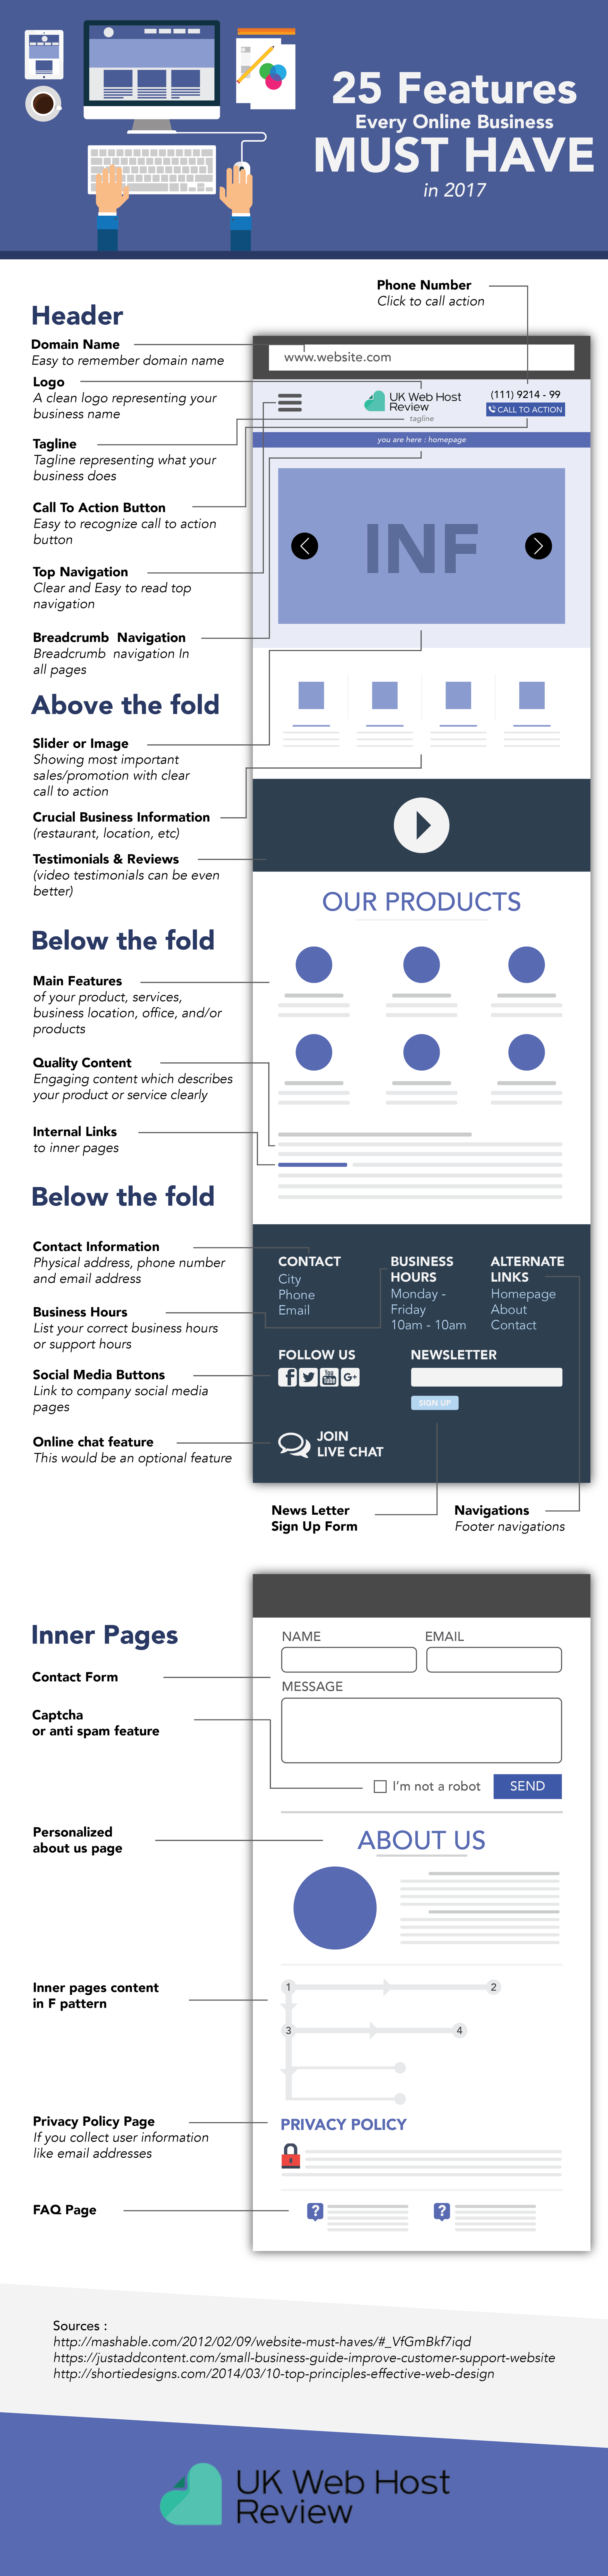 free-infographic-uk-web-host-full